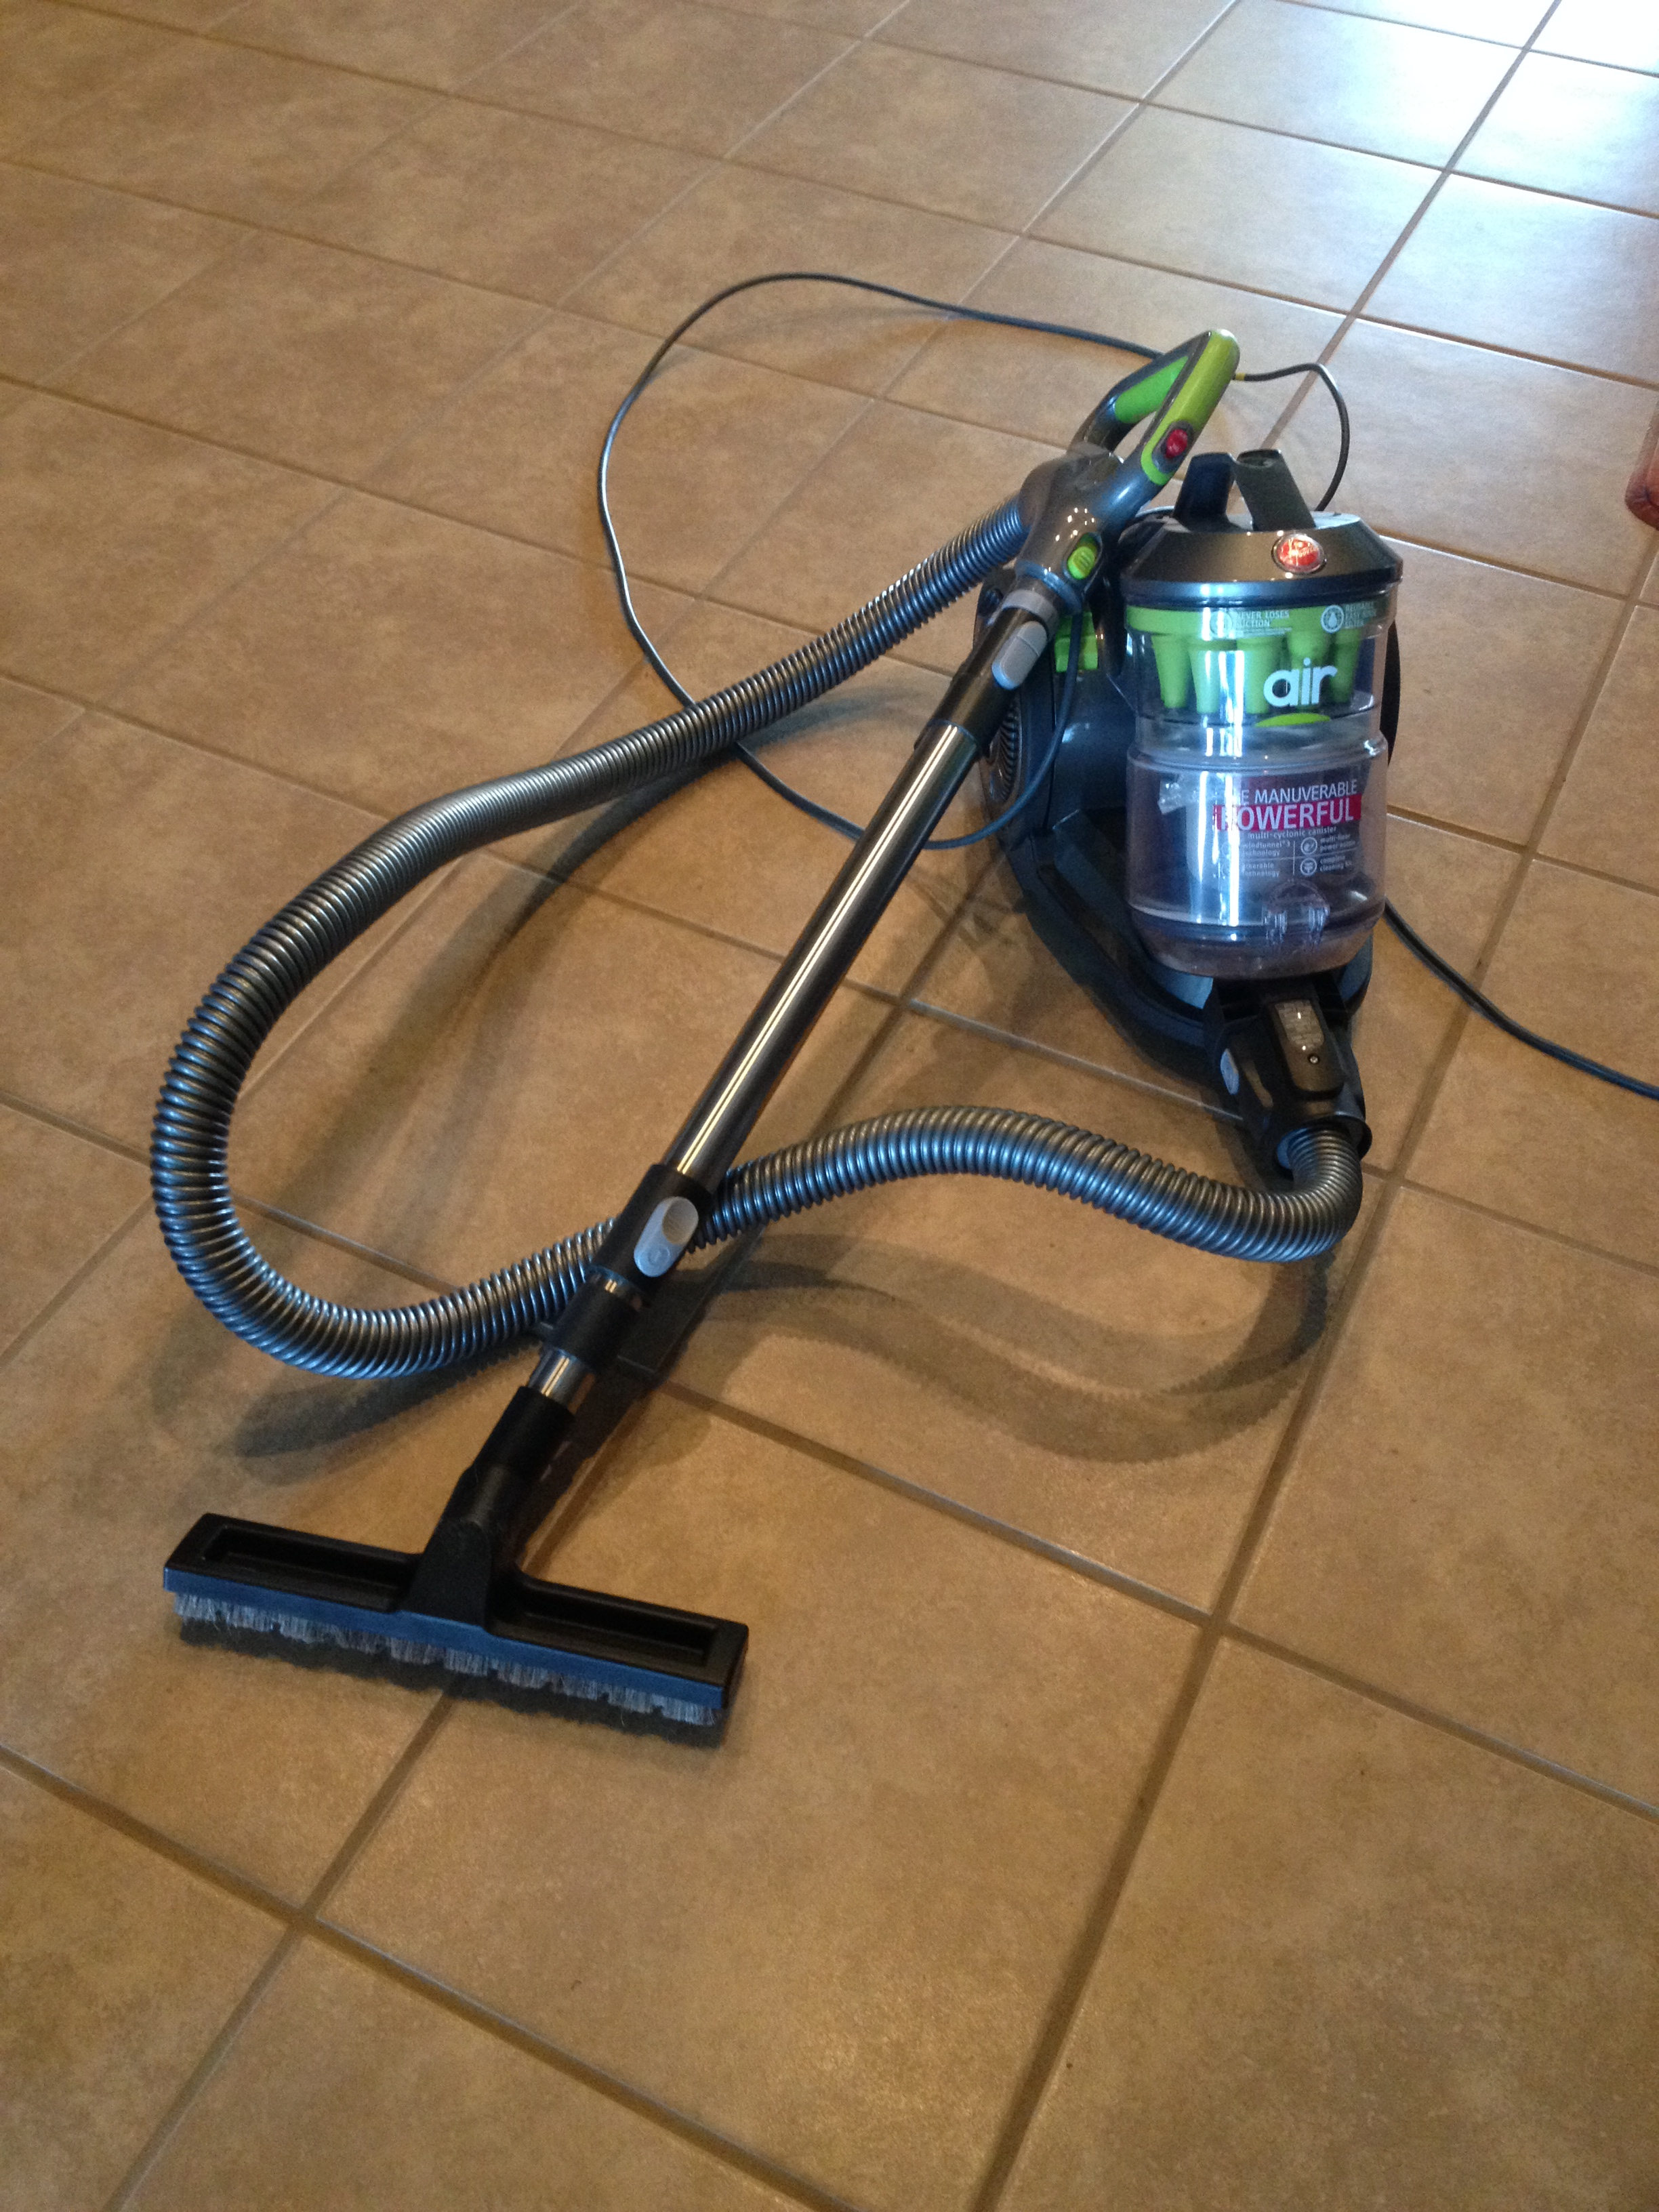 Today I purchased a brand new vacuum cleaner, something I have needed to do  for a while, but put off until I HAD to! I purchased a Hoover Air Canister  ...